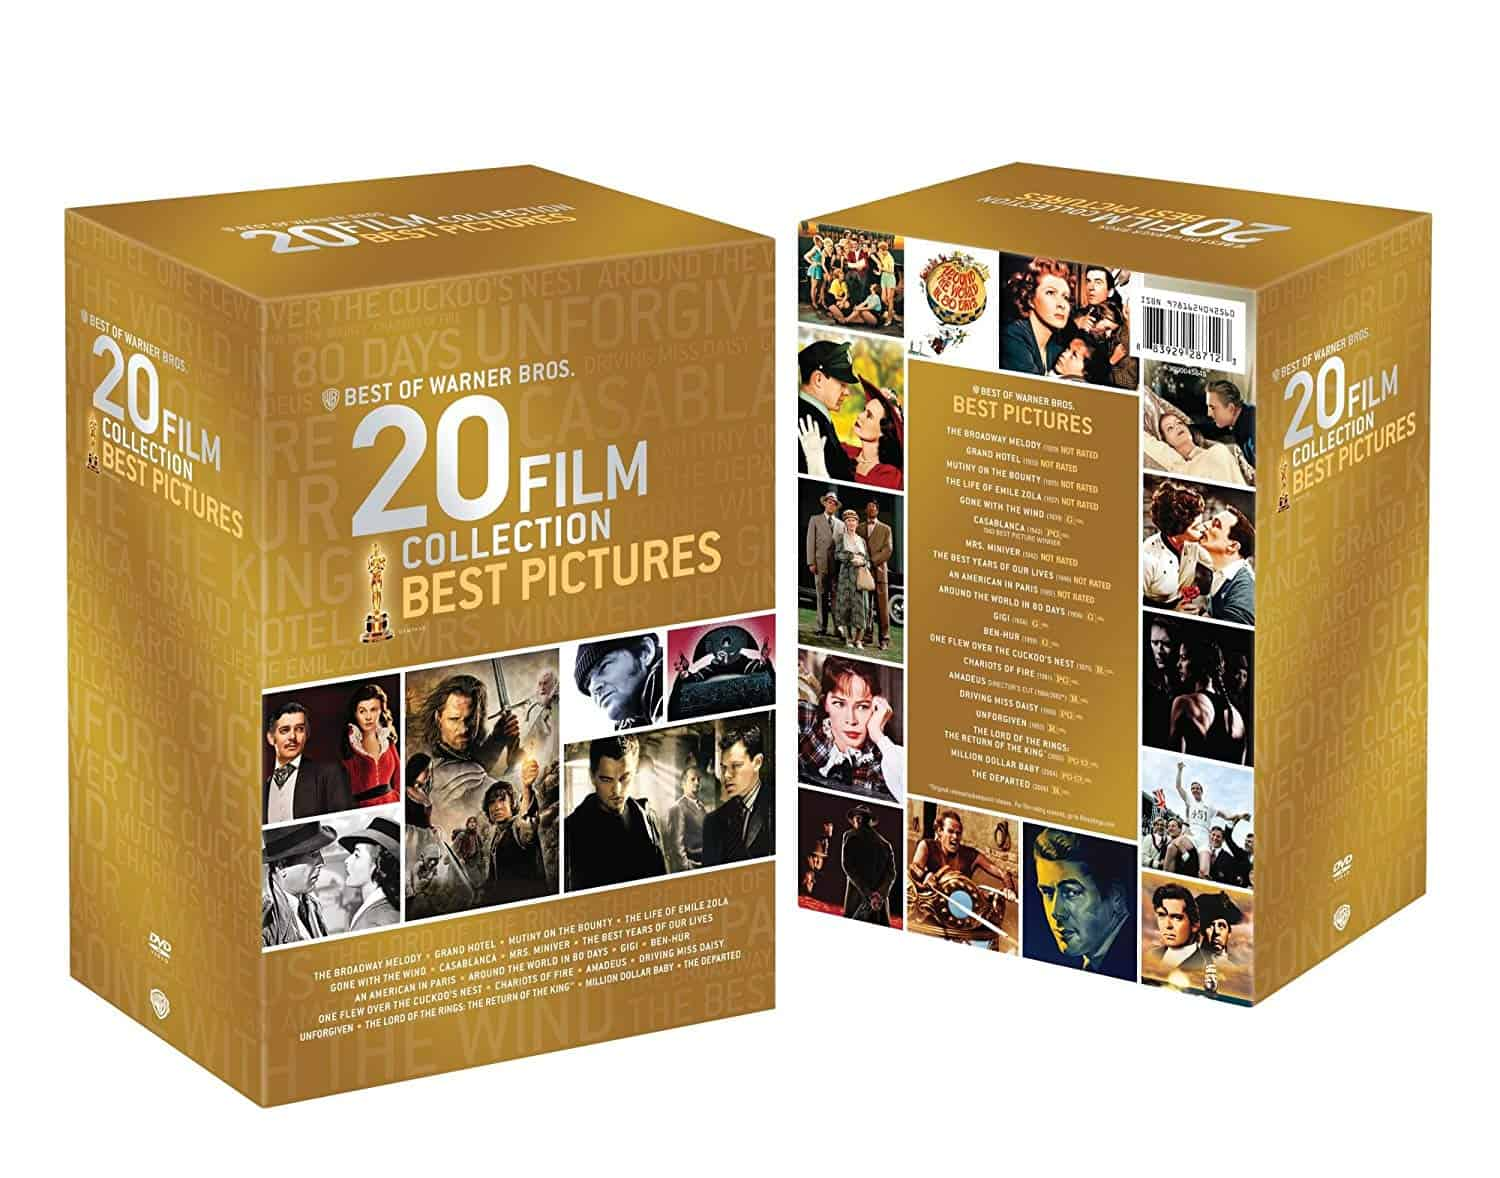 A collection of classic films and best pictures.